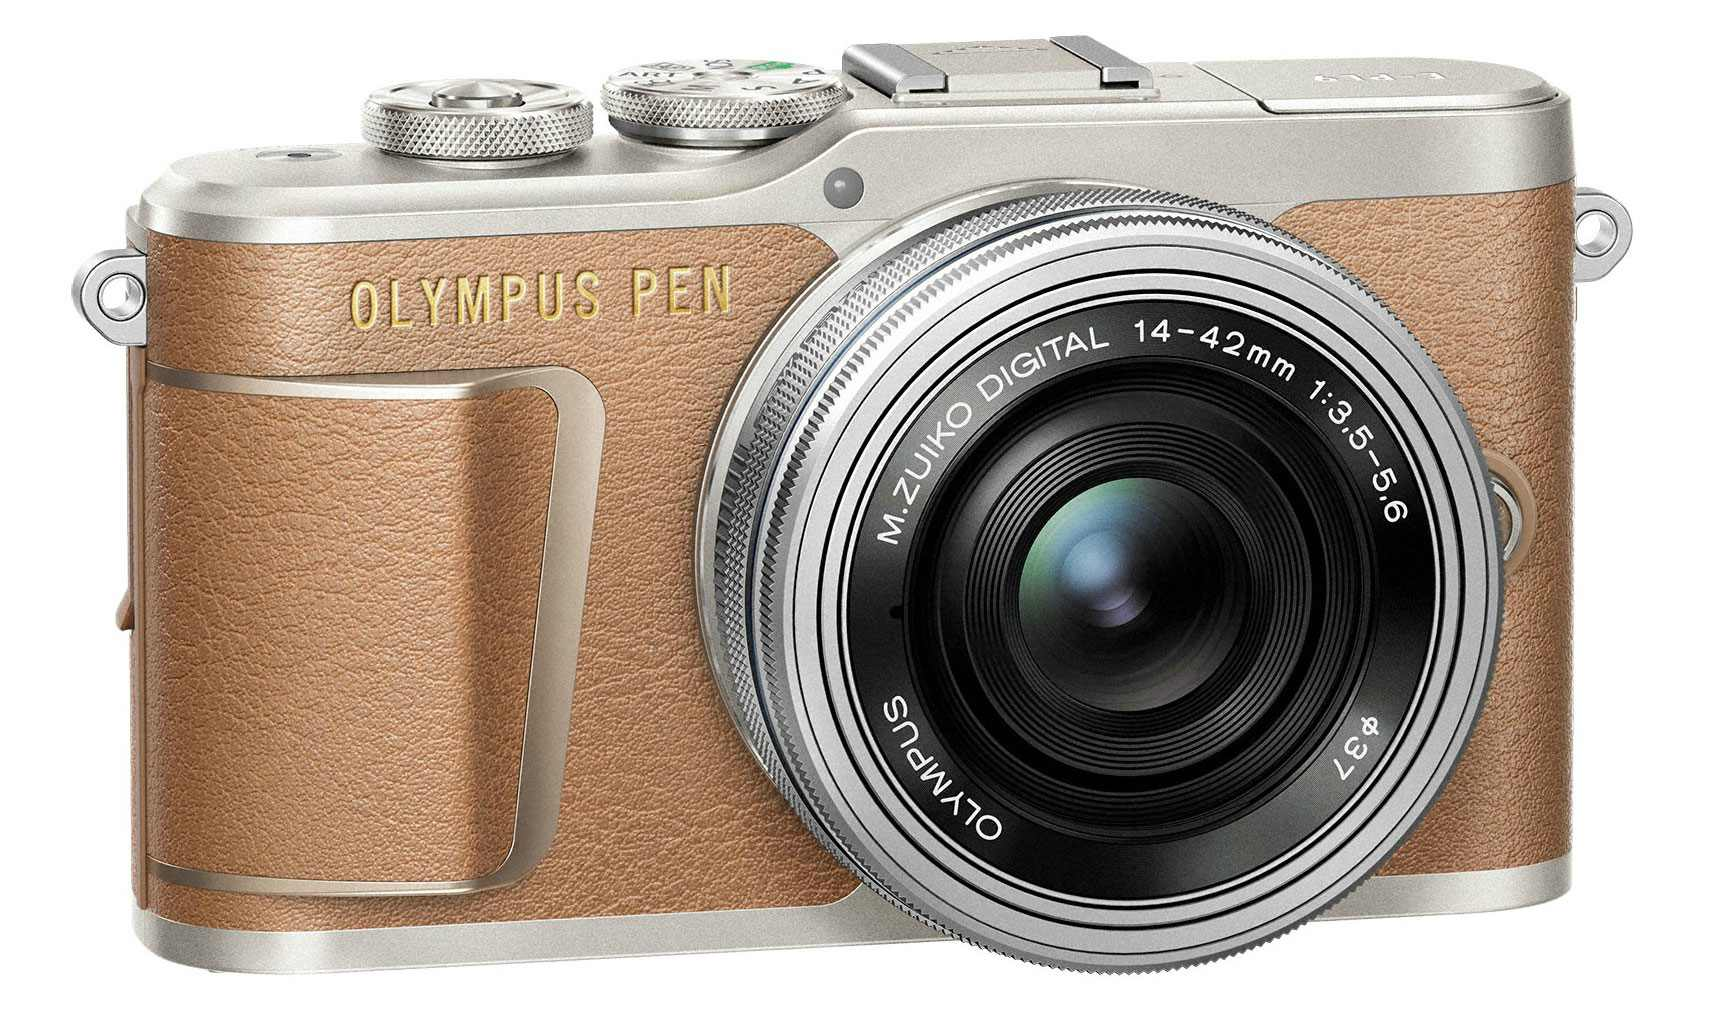 Olympus PEN E-PL9 Specifications